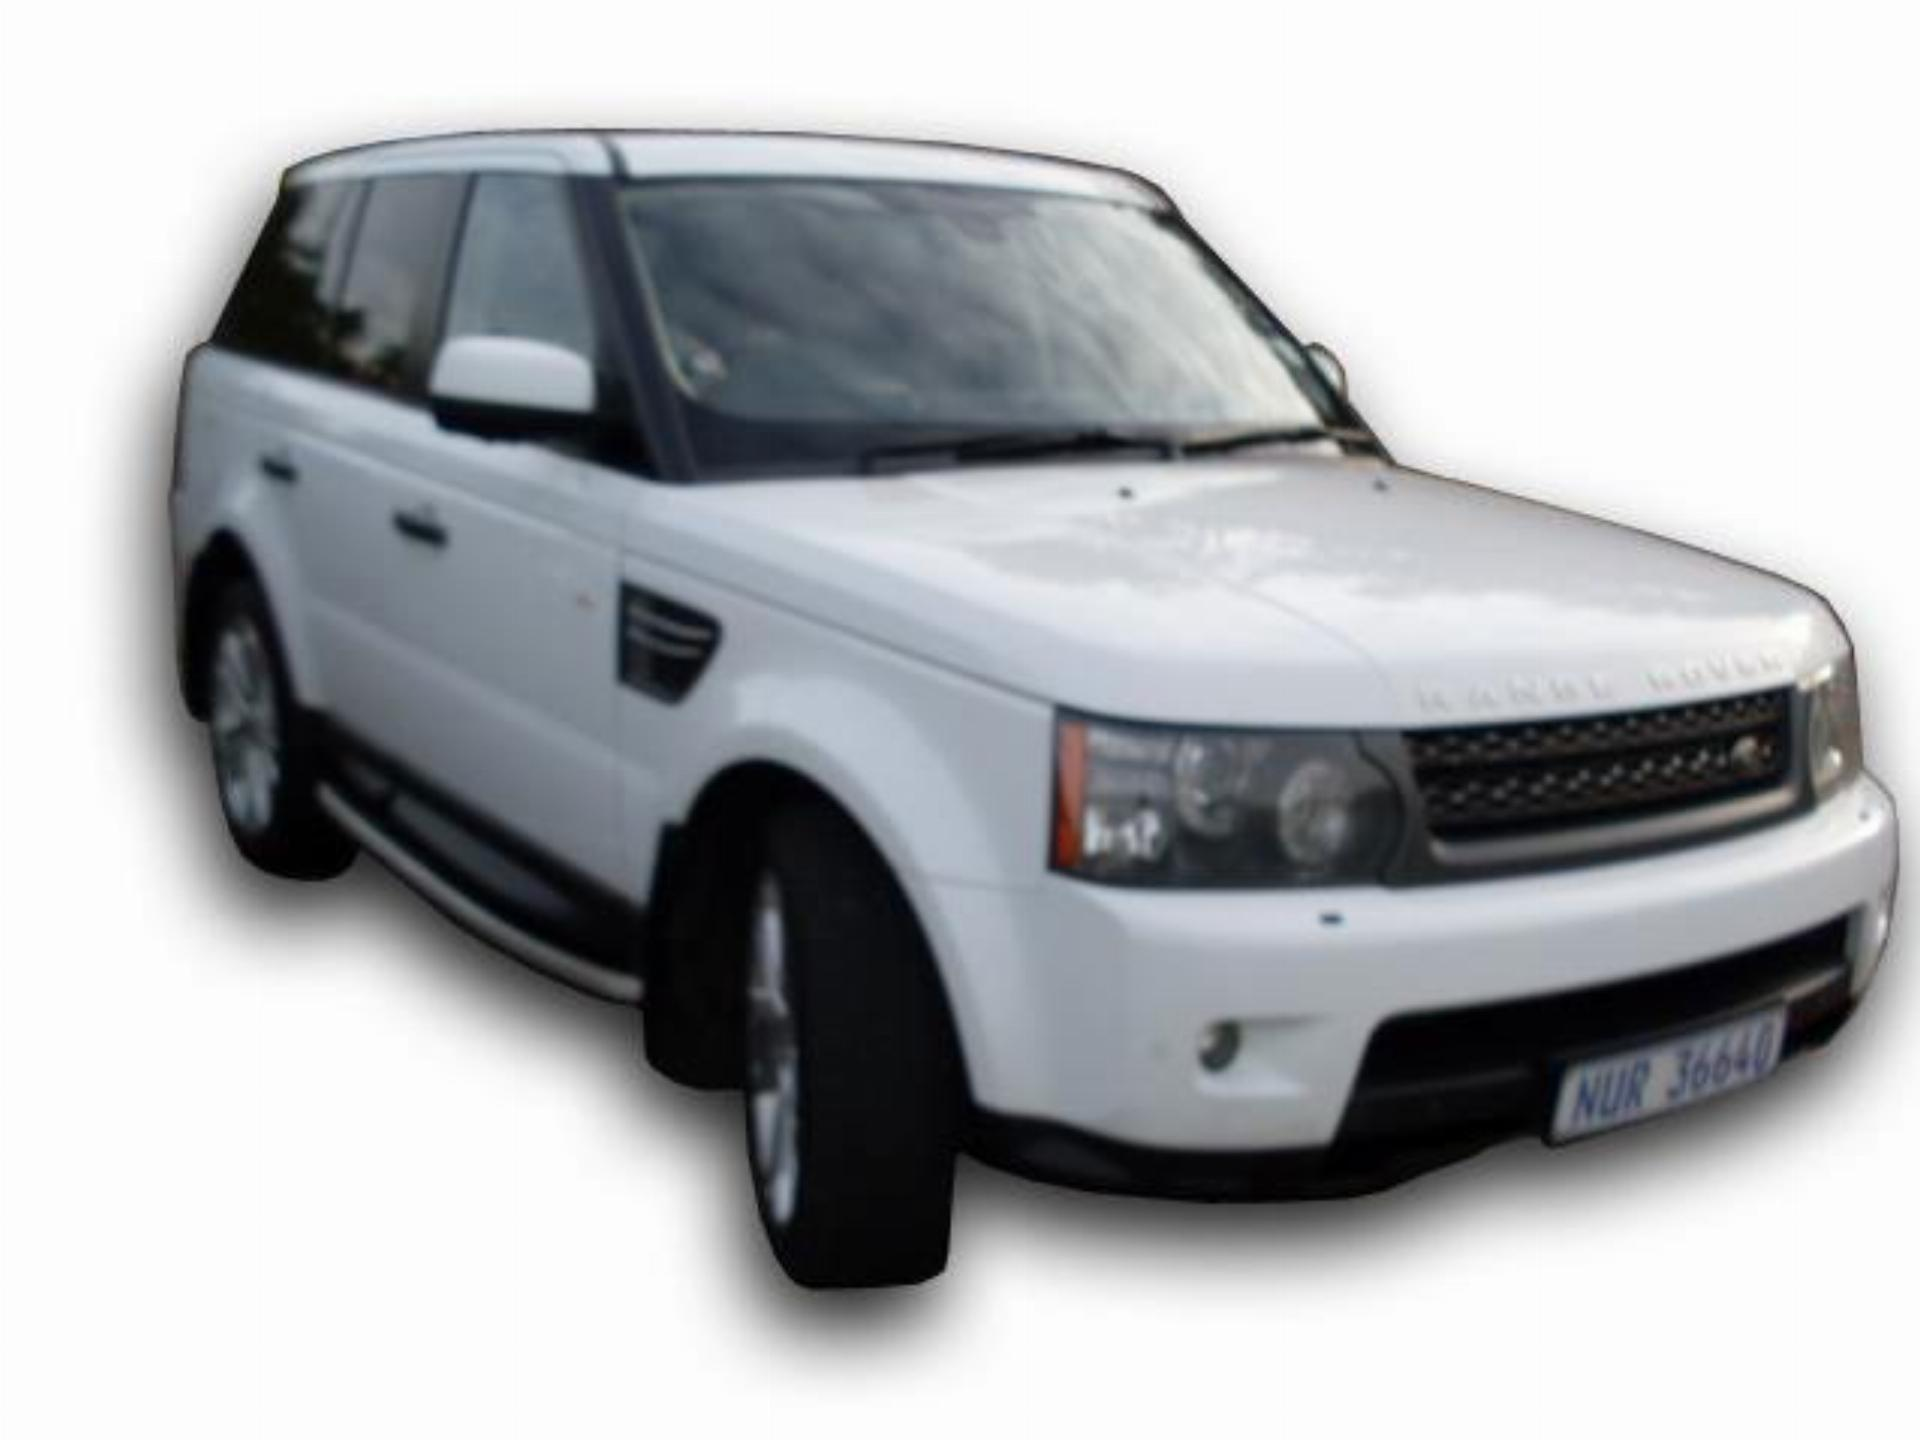 Land Rover Range Rover Sport 3.0D Hse Lux